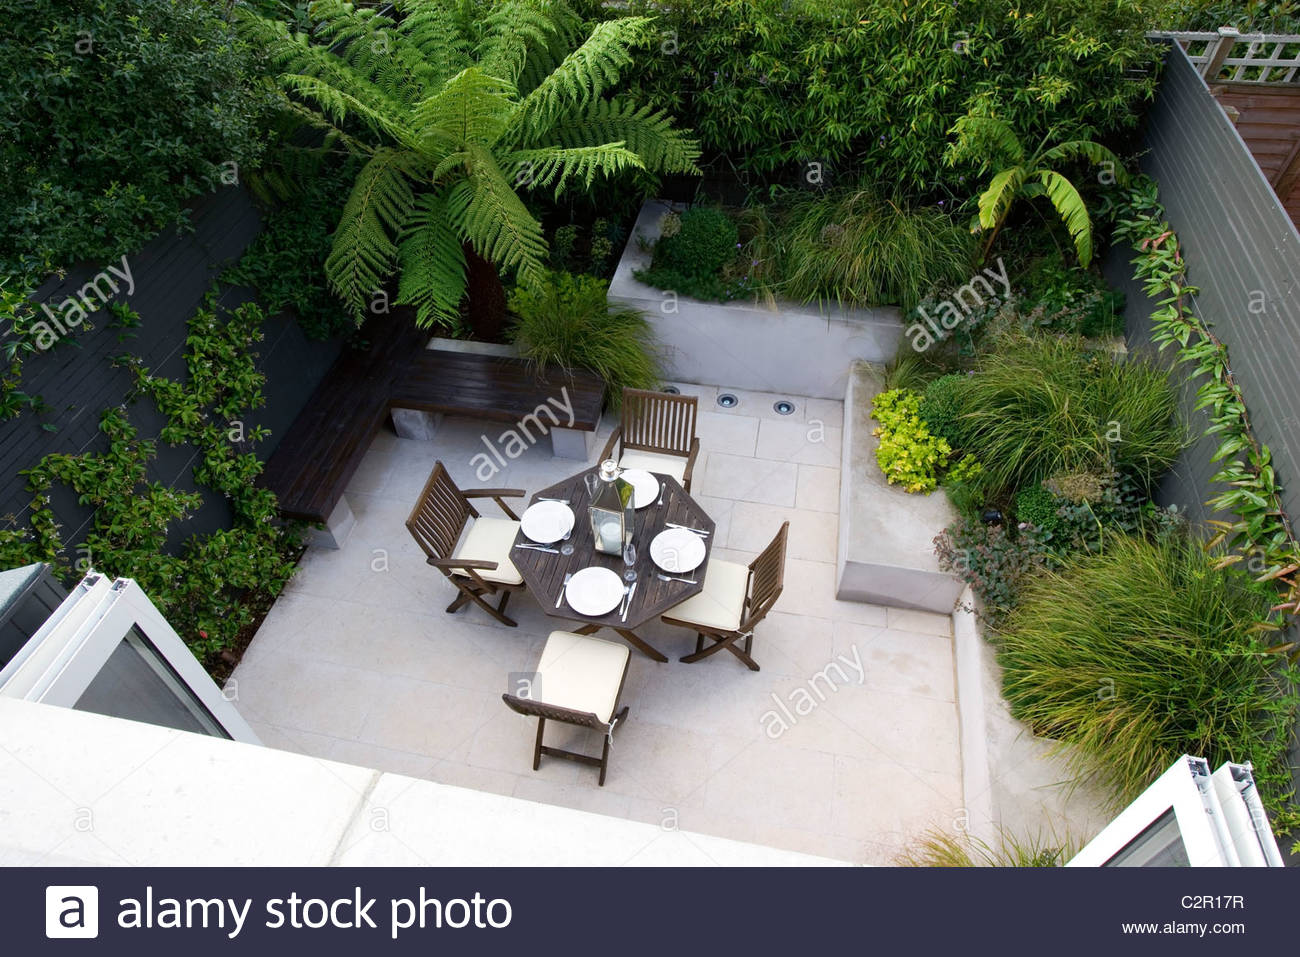 Small Town Garden With Patio With Raised Beds, Tree Fern And Table And  Chairs